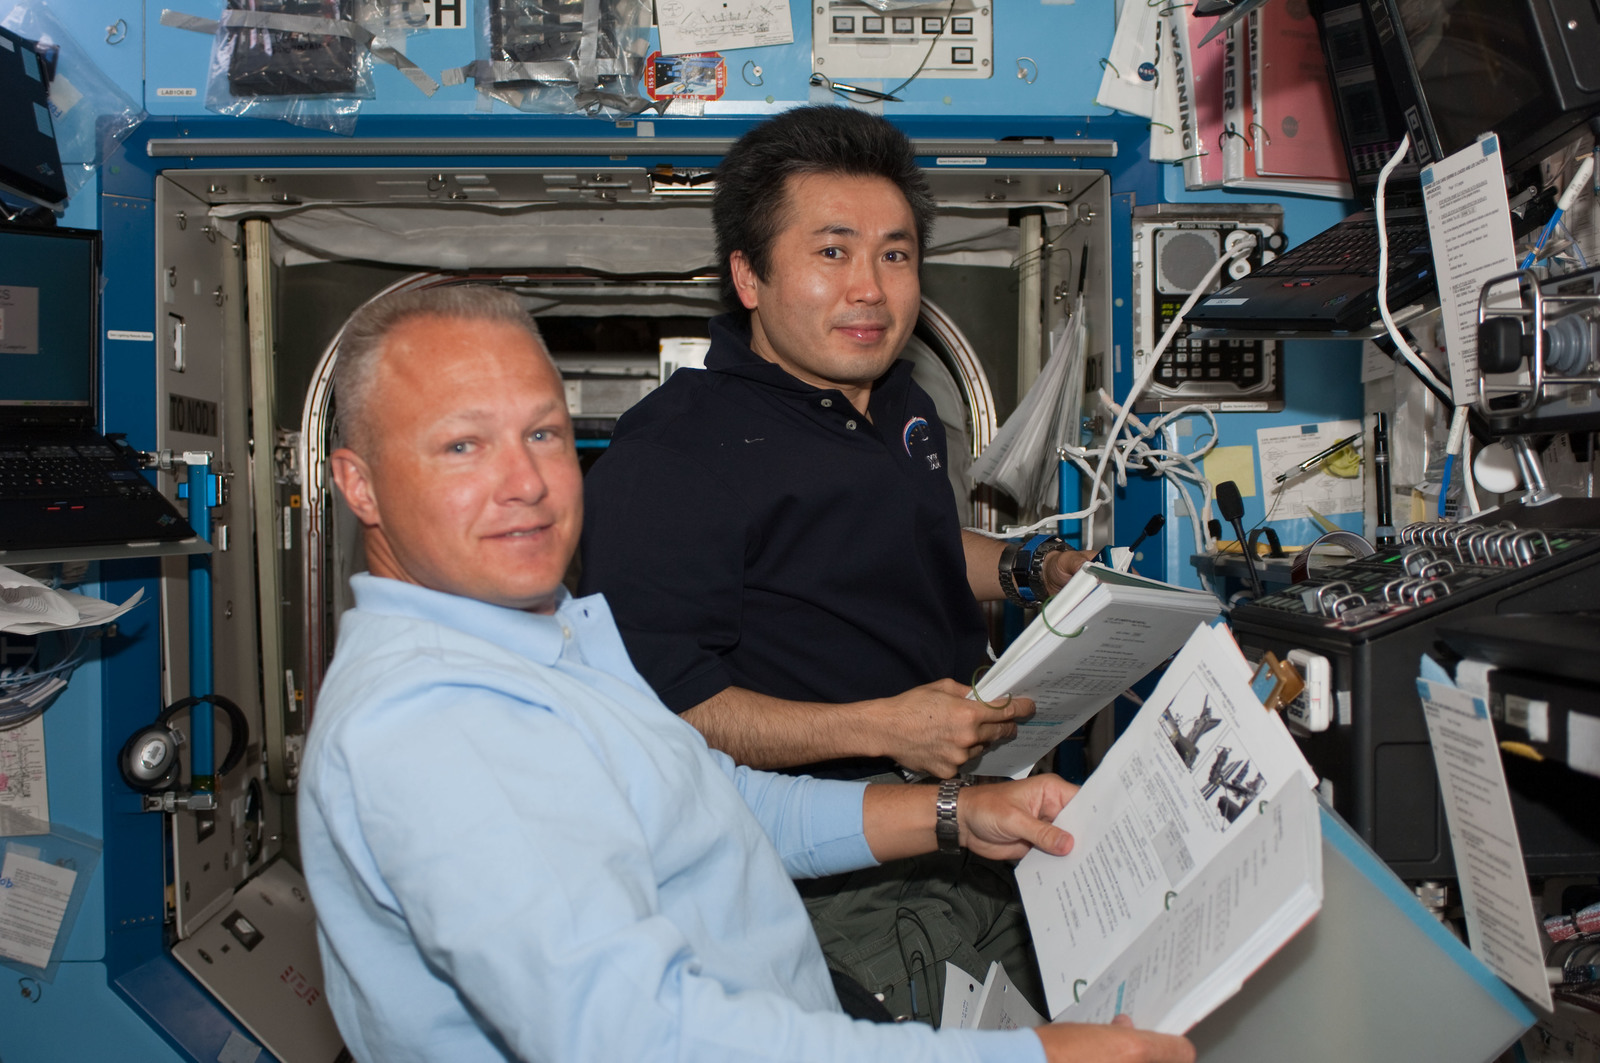 S127E006851 - STS-127 - Wakata and Hurley during EVA-1 of STS-127 / Expedition Joint Operations